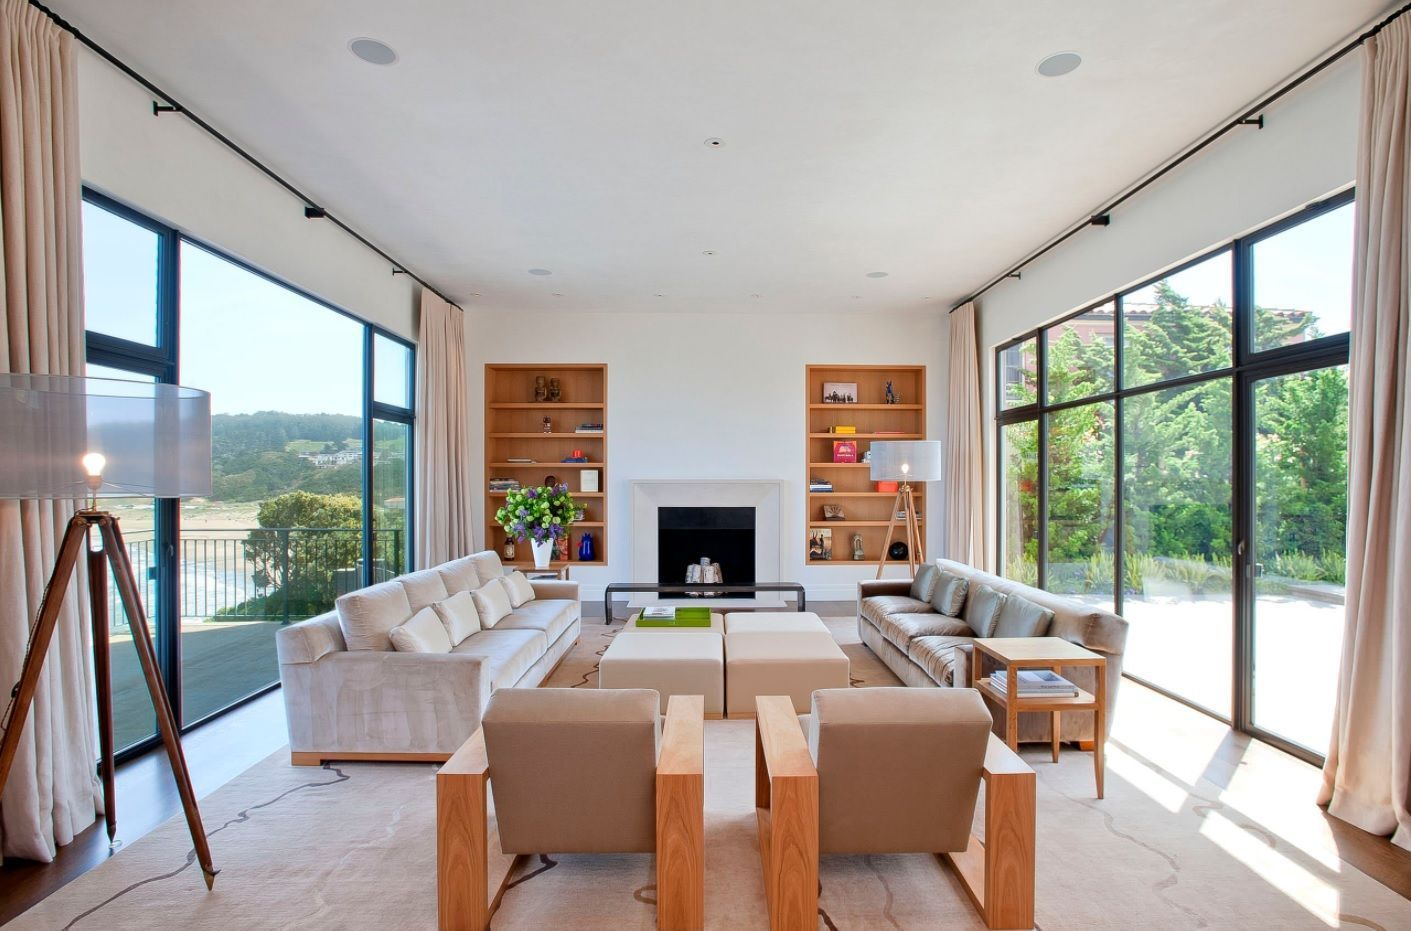 Living Room Layout Design & Decoration Ideas. Narrow long white painted ambience with panoramic windows